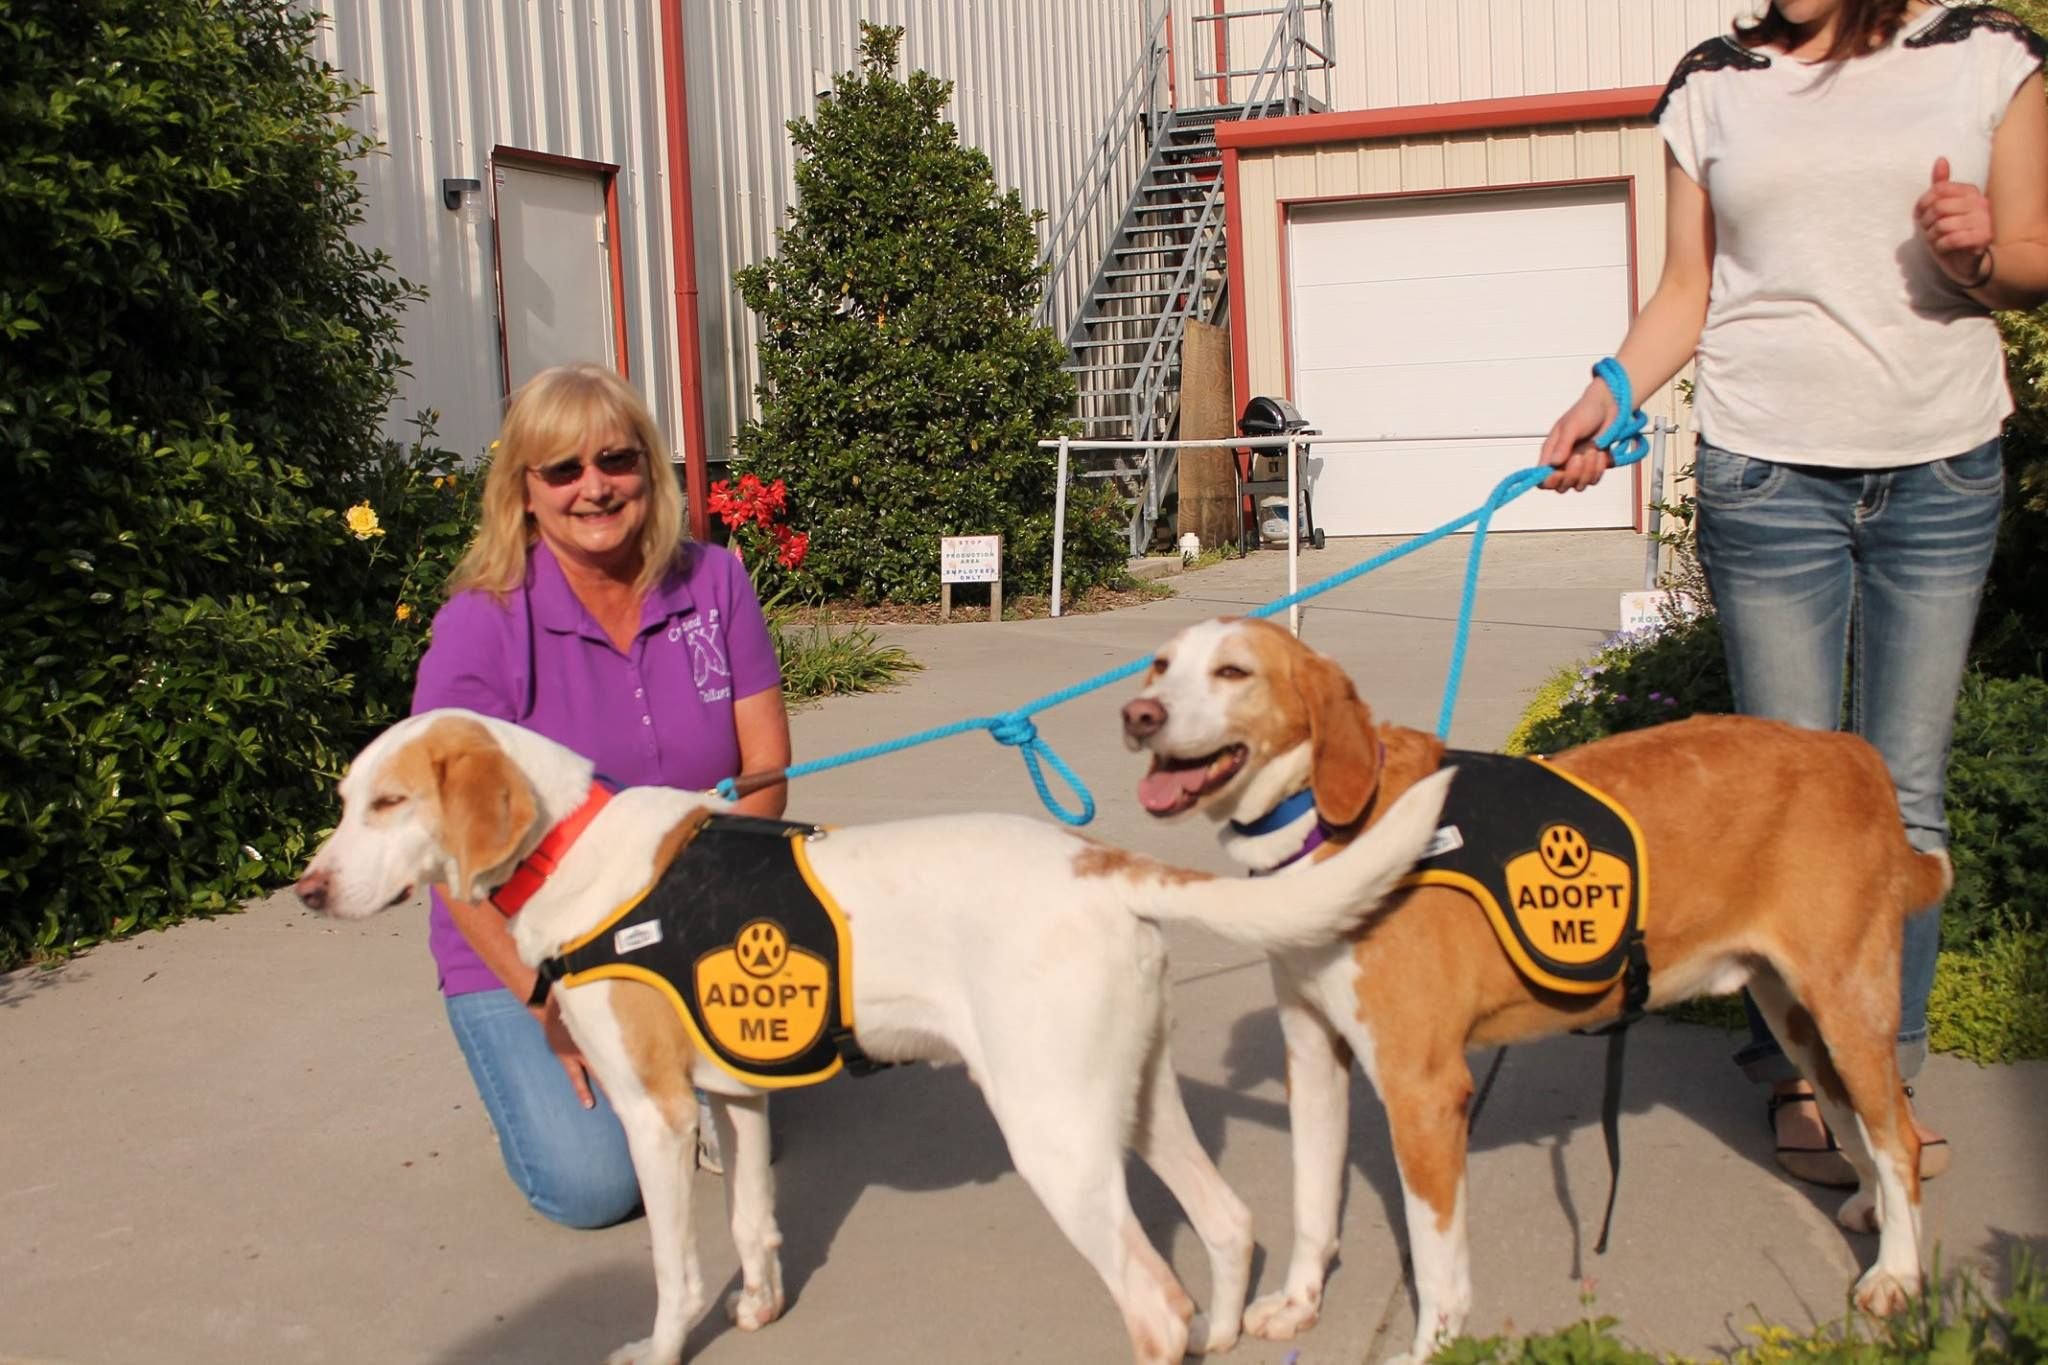 Thank you Crossed Paws for making sure all of our dogs have collars! YOU make the world a better place!